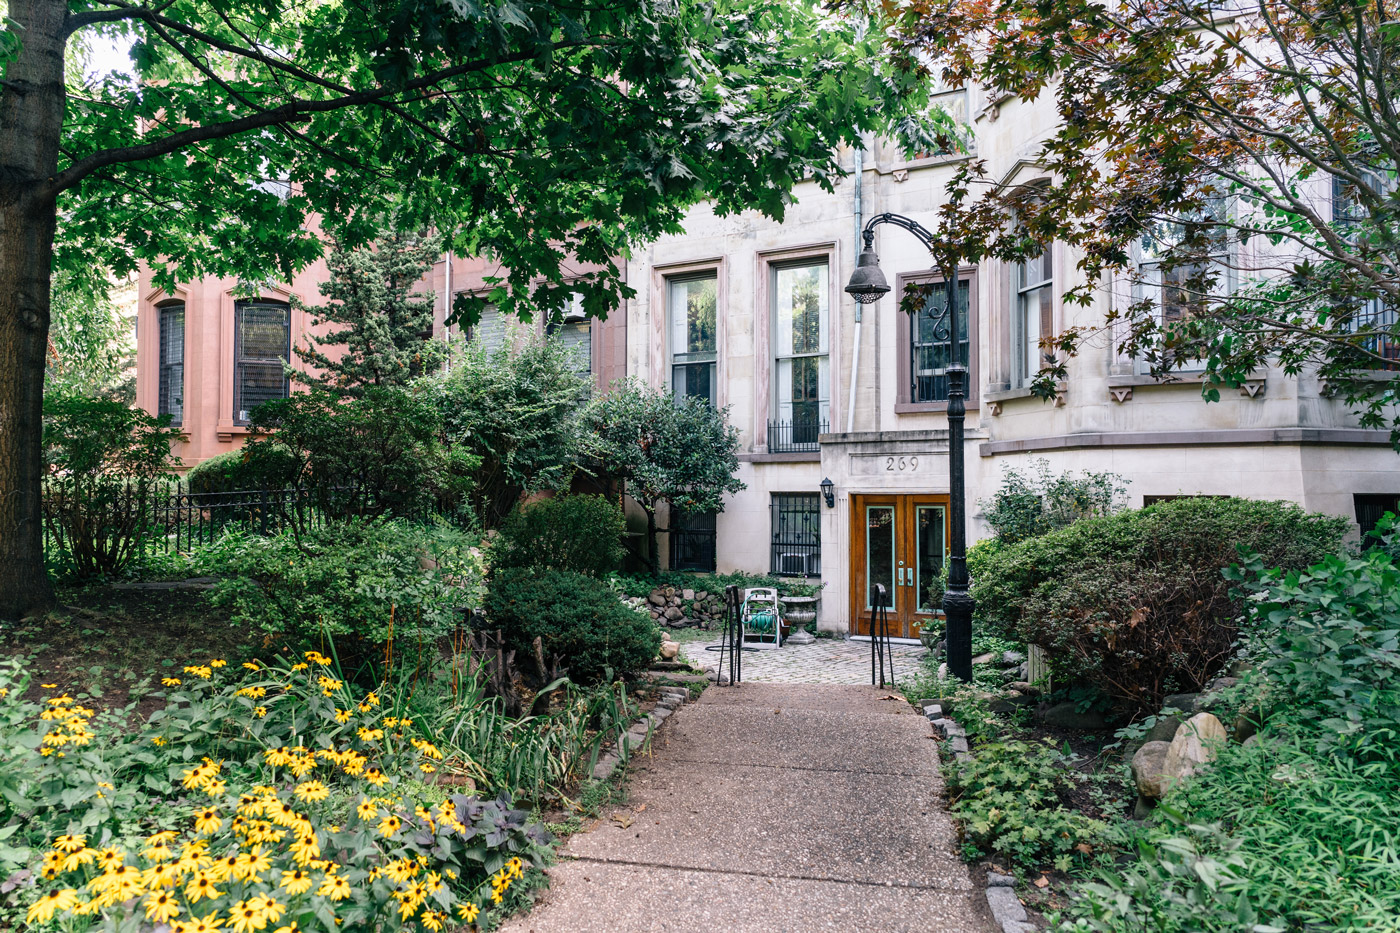 "White residential building with a small park in front in Clinton Hill"" style="